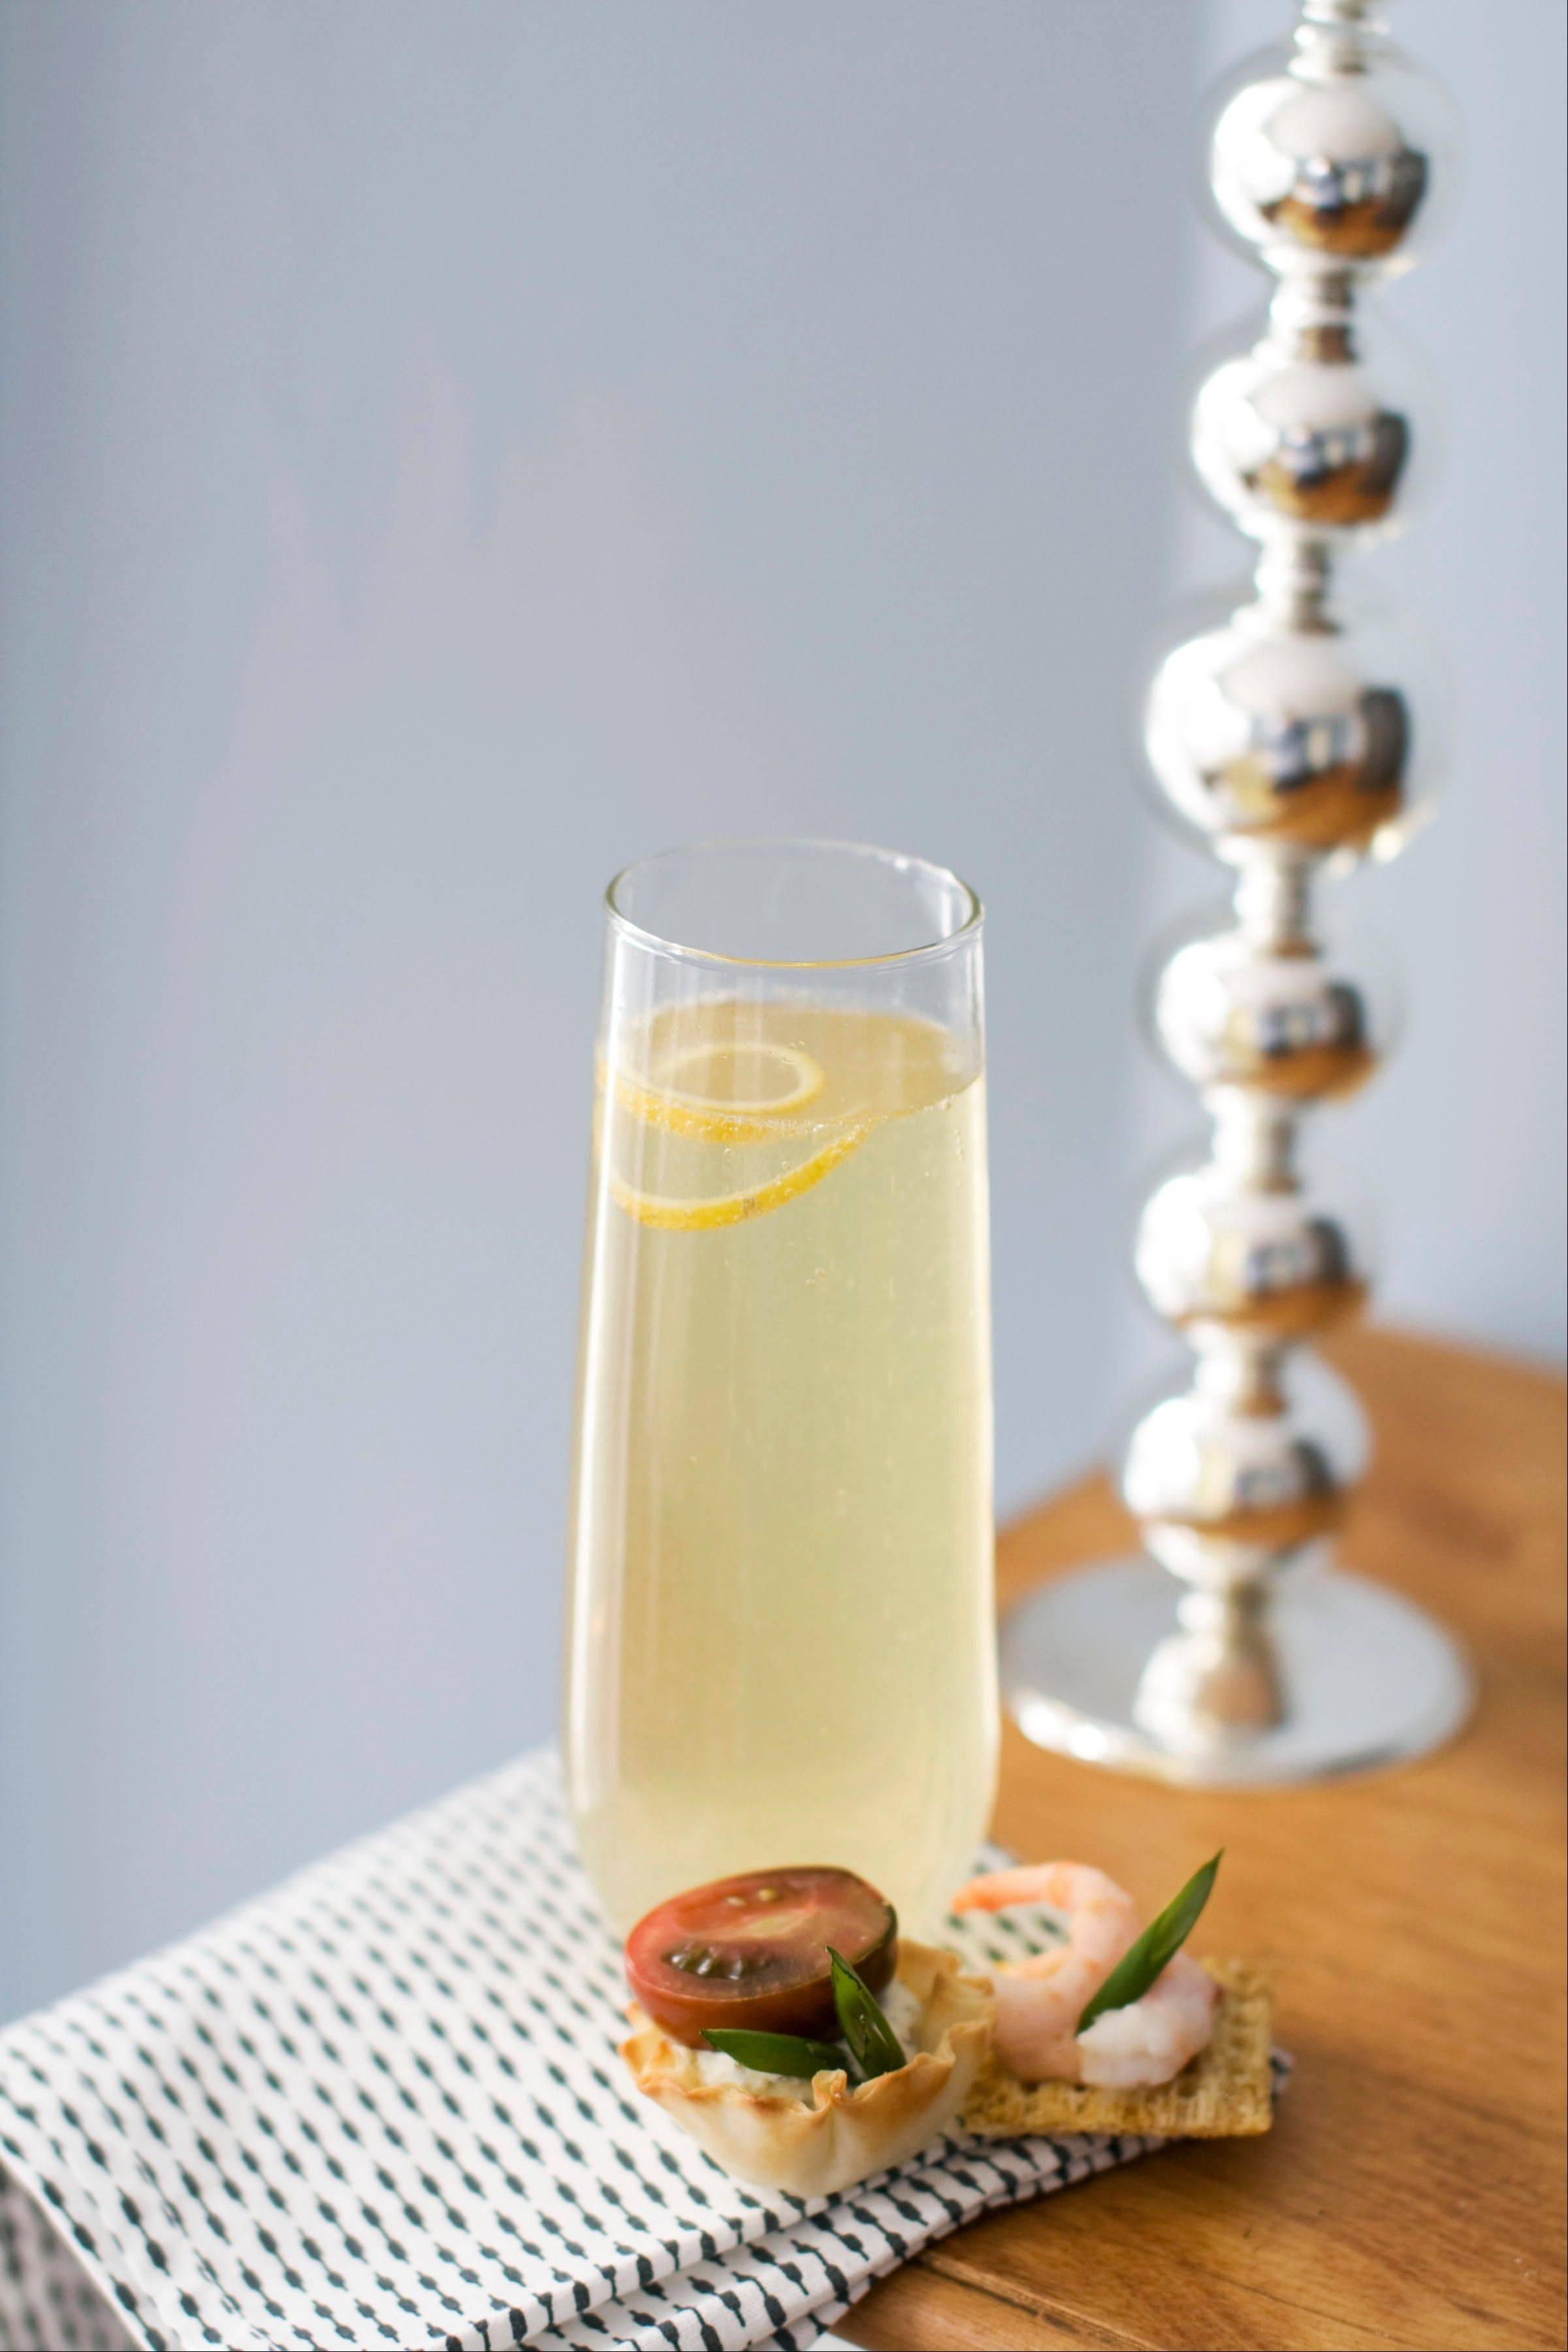 Citrus bubbly, served with a curl of lemon, is the perfect sipper for Oscar night festivities.